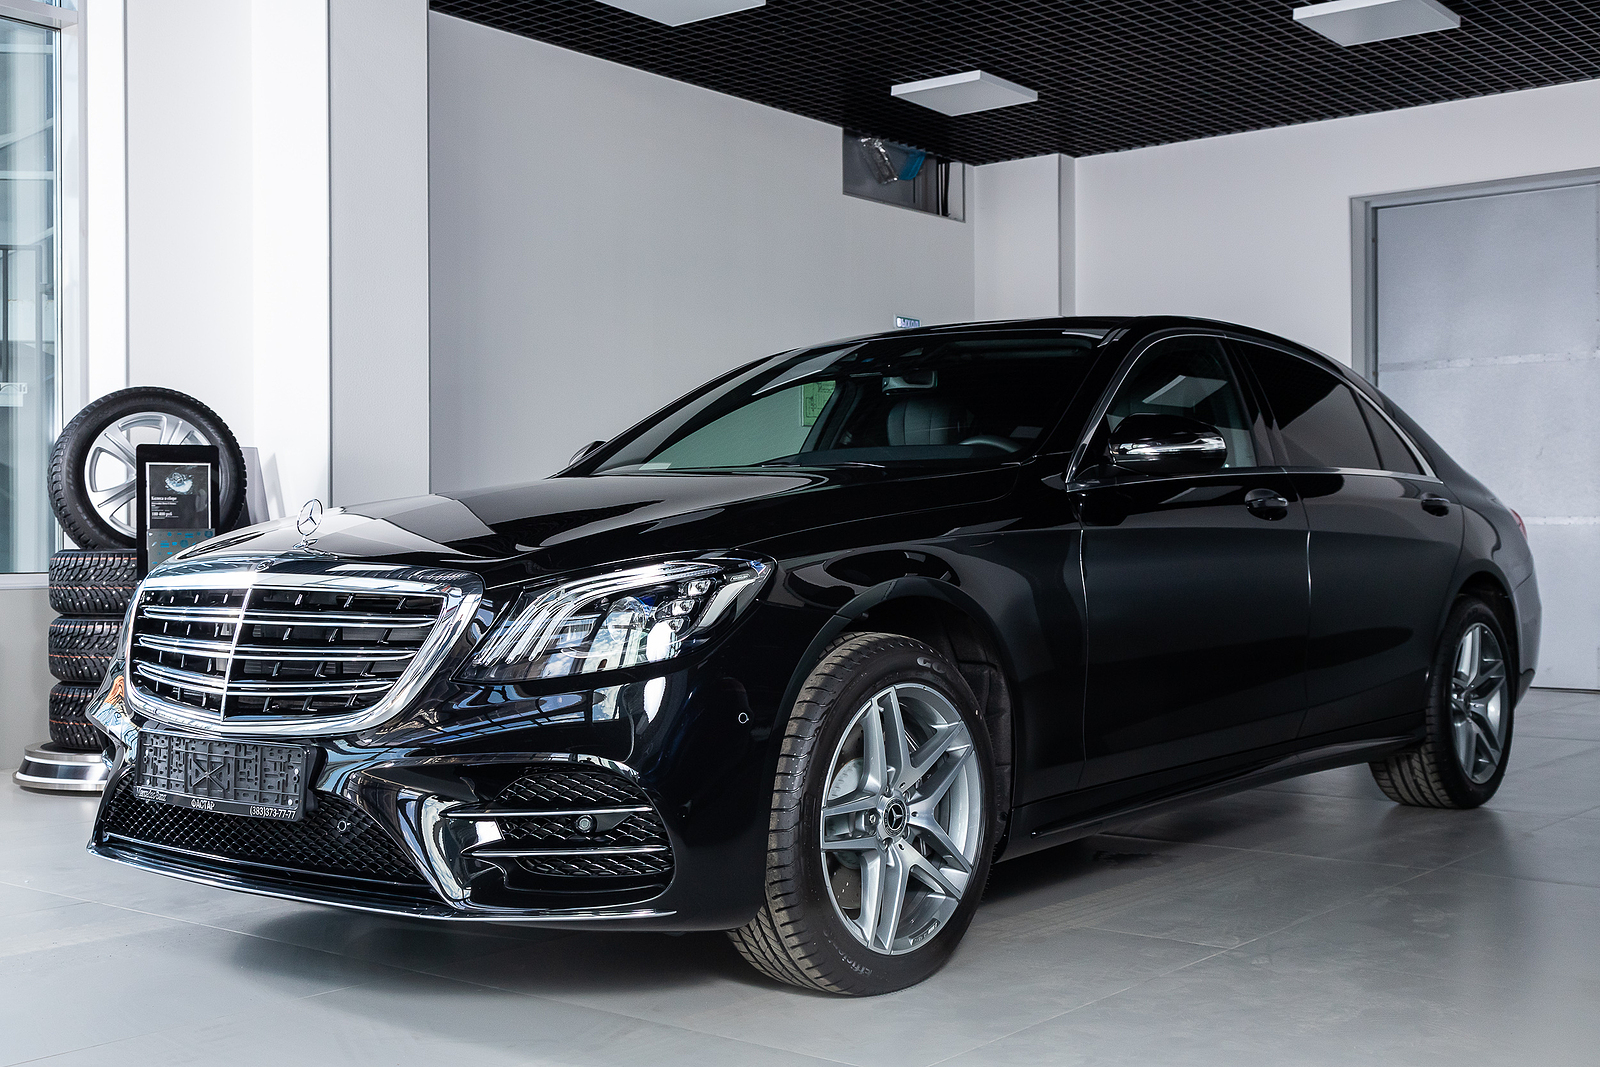 Top 5 Best Luxury Cars for 2020